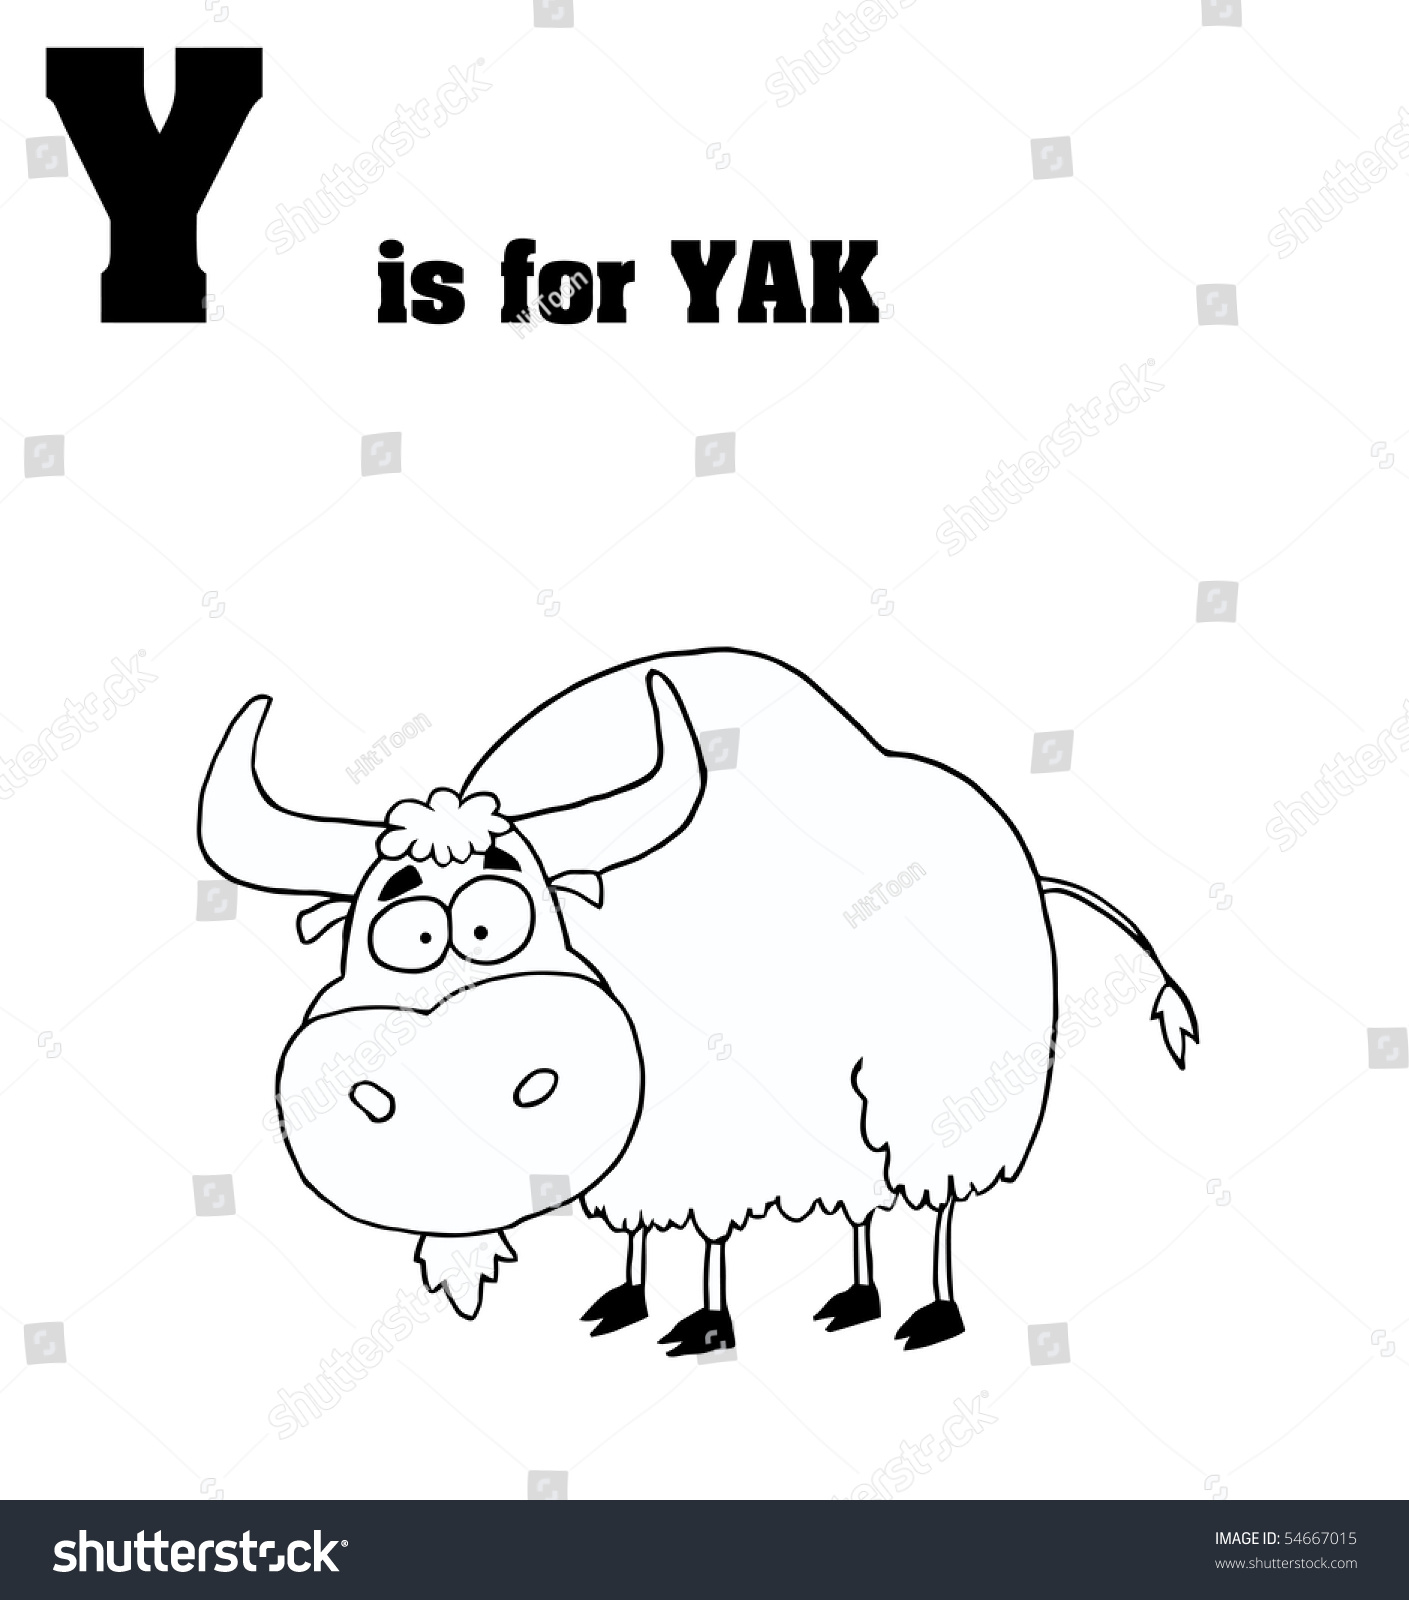 Coloring pages yak - Save To A Lightbox